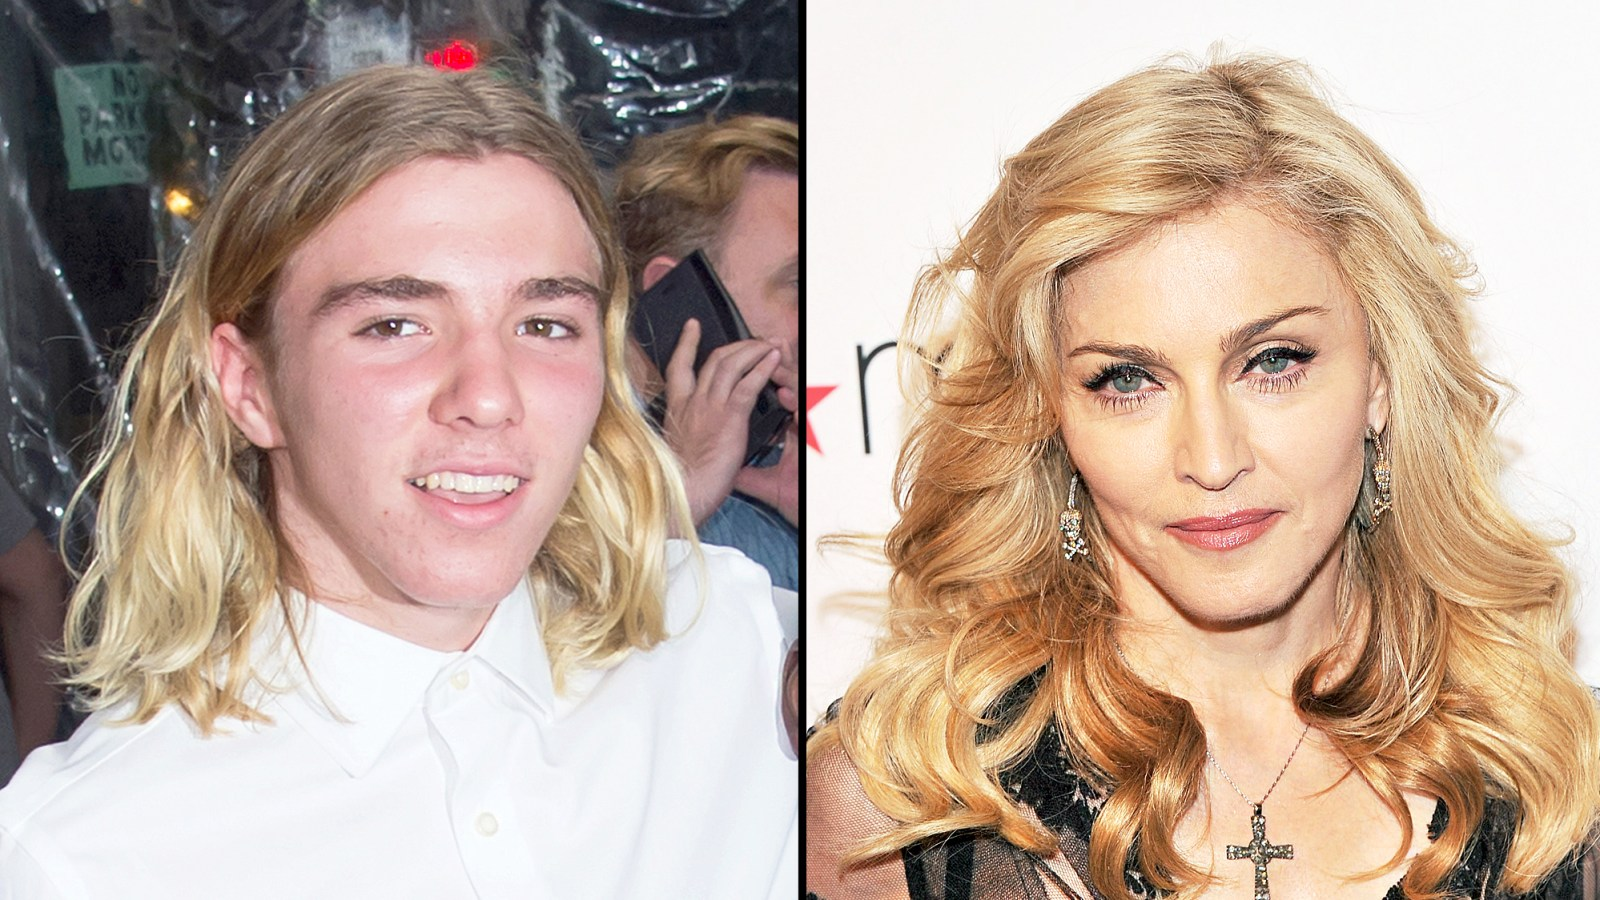 6e839a8ca9 Rocco Ritchie Says He's 'So Glad' He Doesn't Live With Madonna Anymore. By  Evan Real. November 28 ...